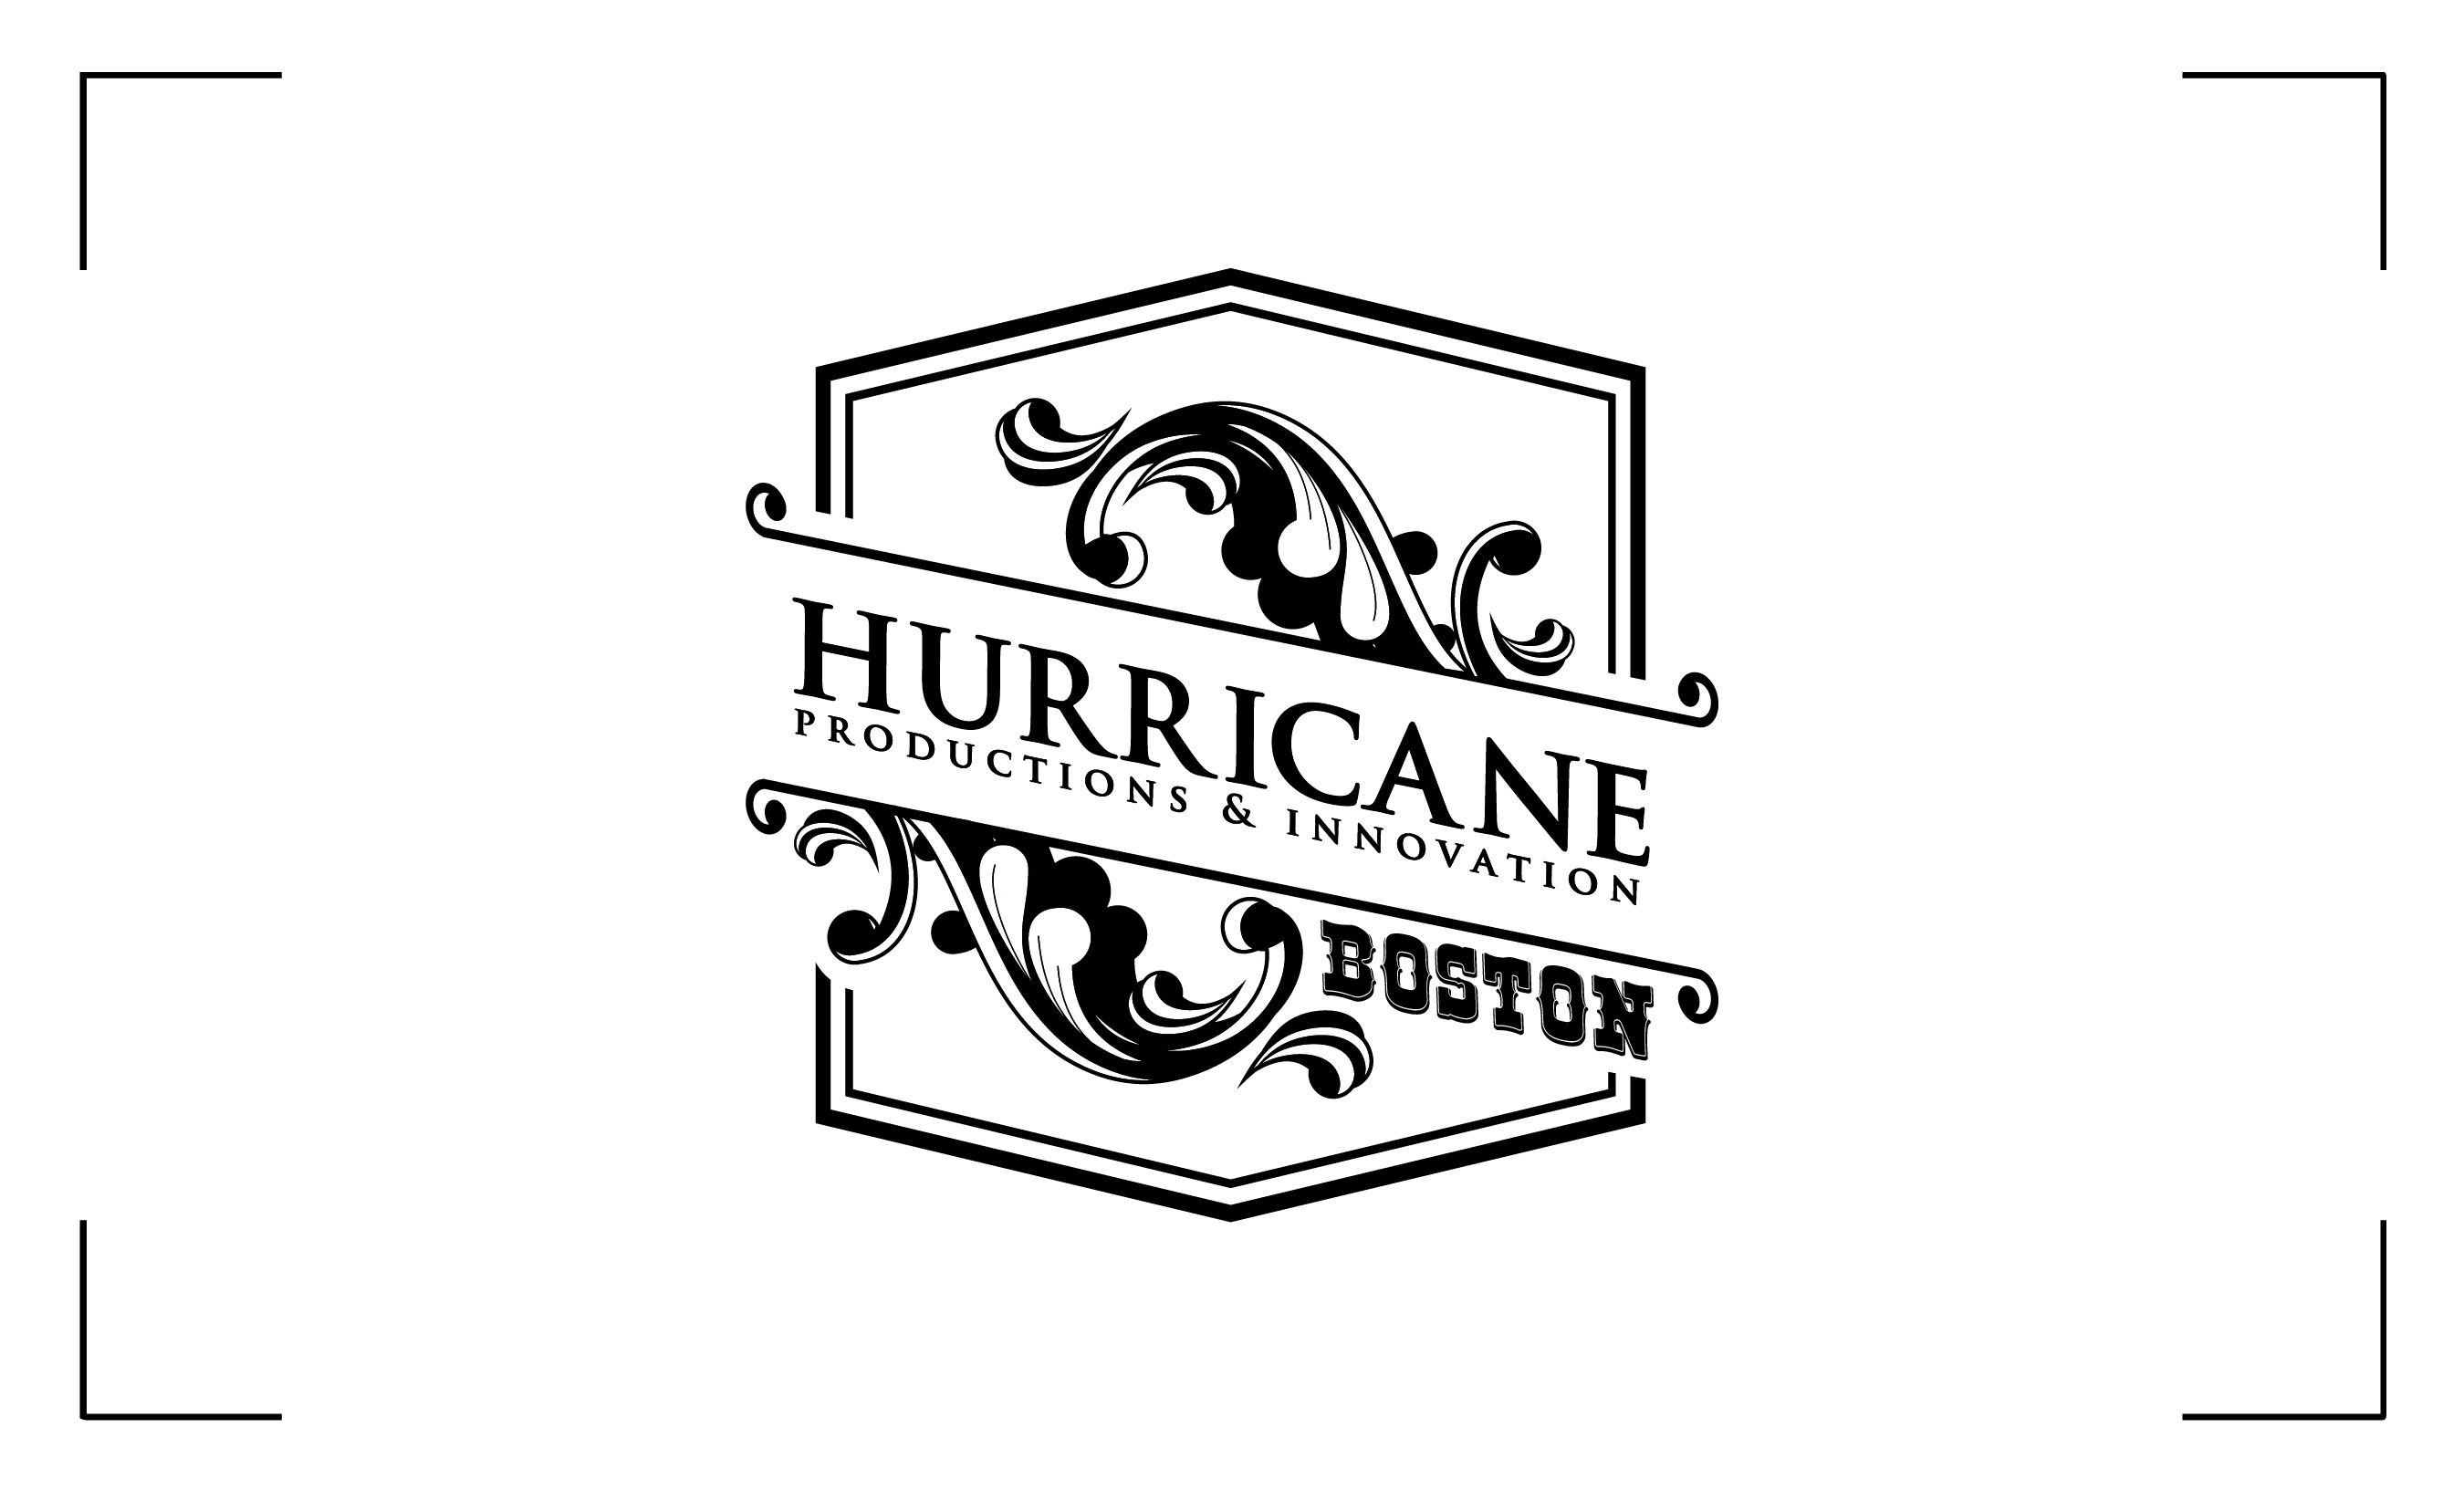 Hurricane Boston